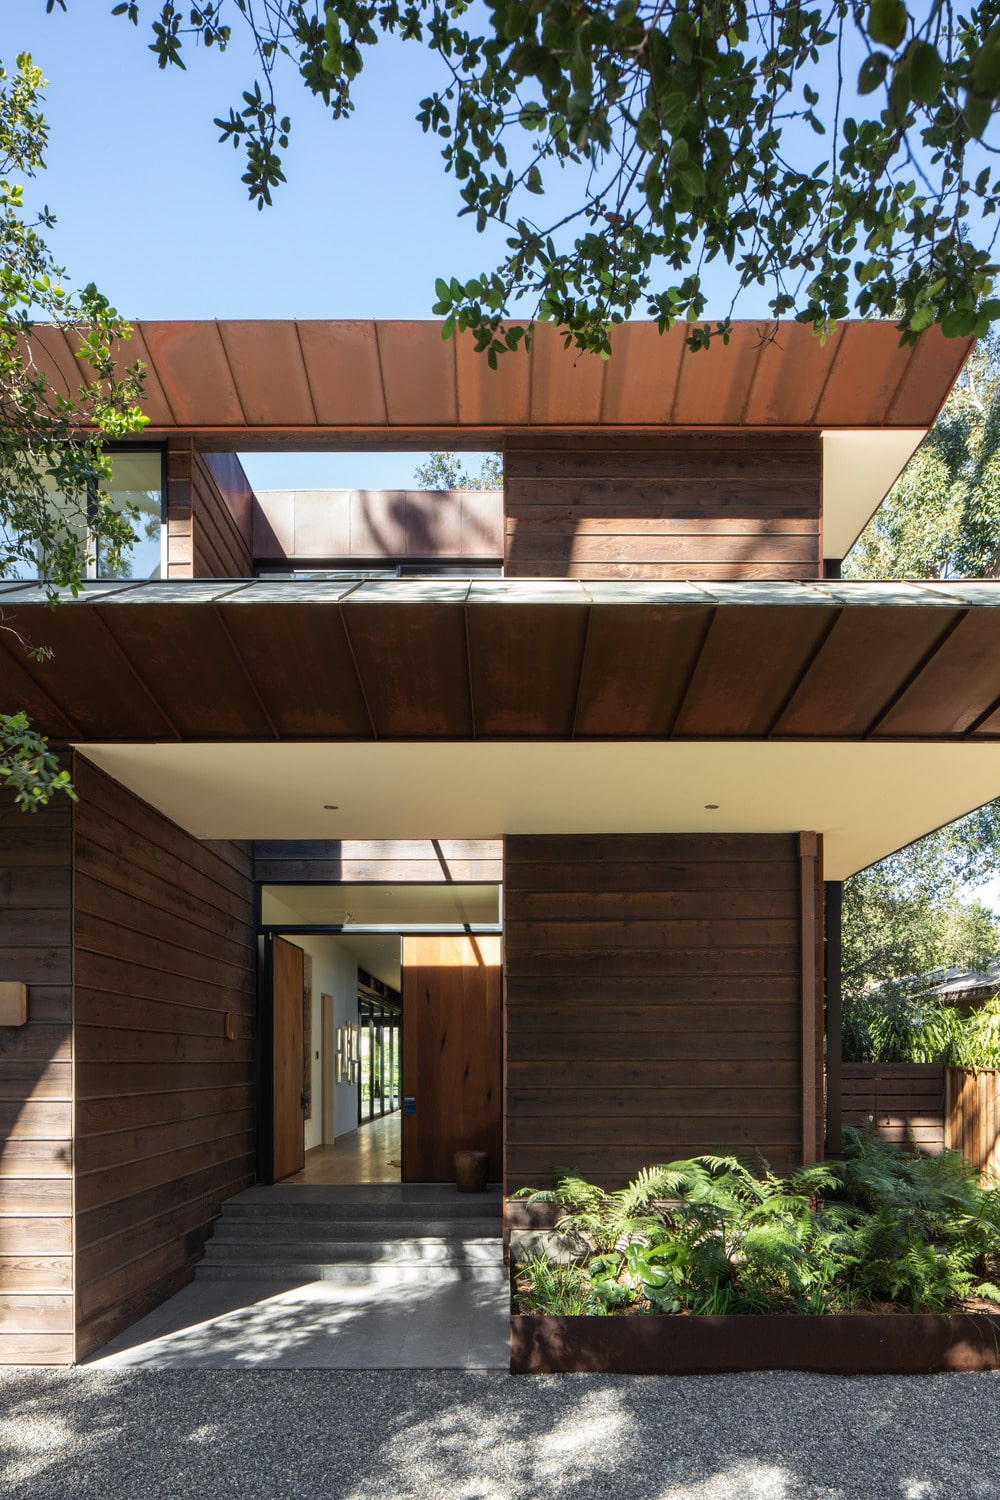 This is a closer look at the main entrance of the house with a wooden main door to match the wooden exterior walls. This area is adorned with lovely planter on the side of the concrete walkway.